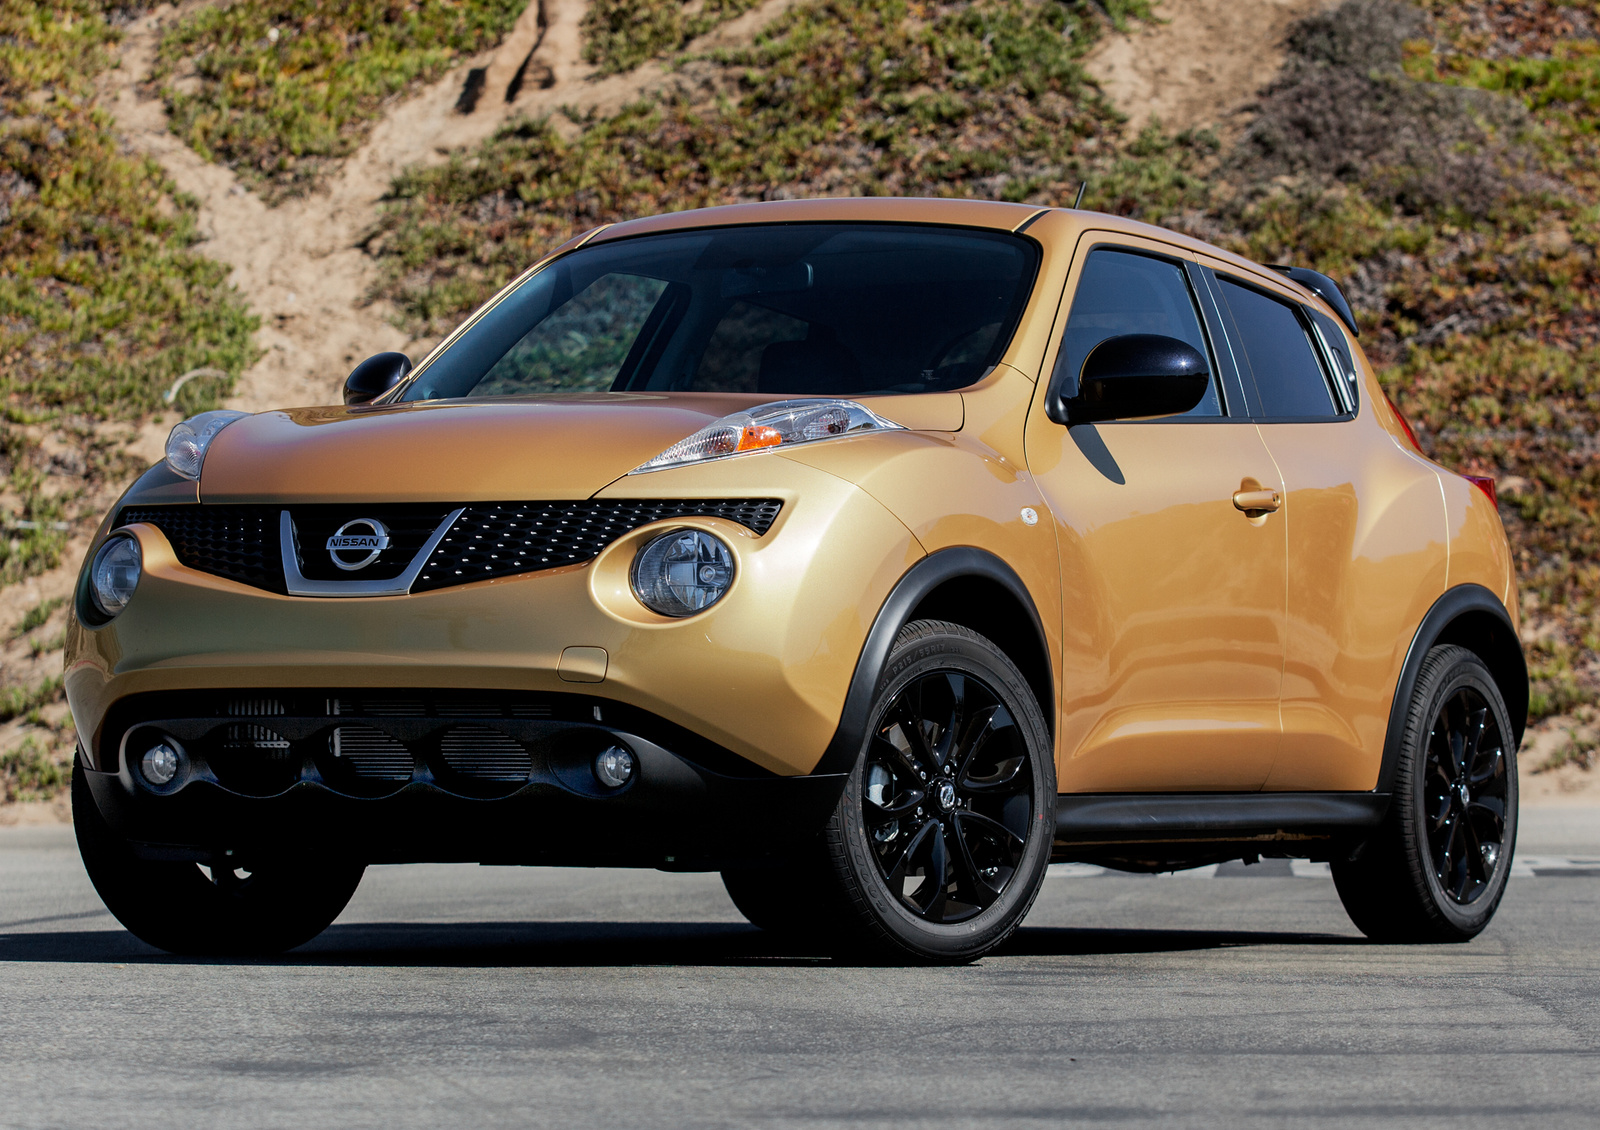 2014 nissan juke test drive review cargurus. Black Bedroom Furniture Sets. Home Design Ideas